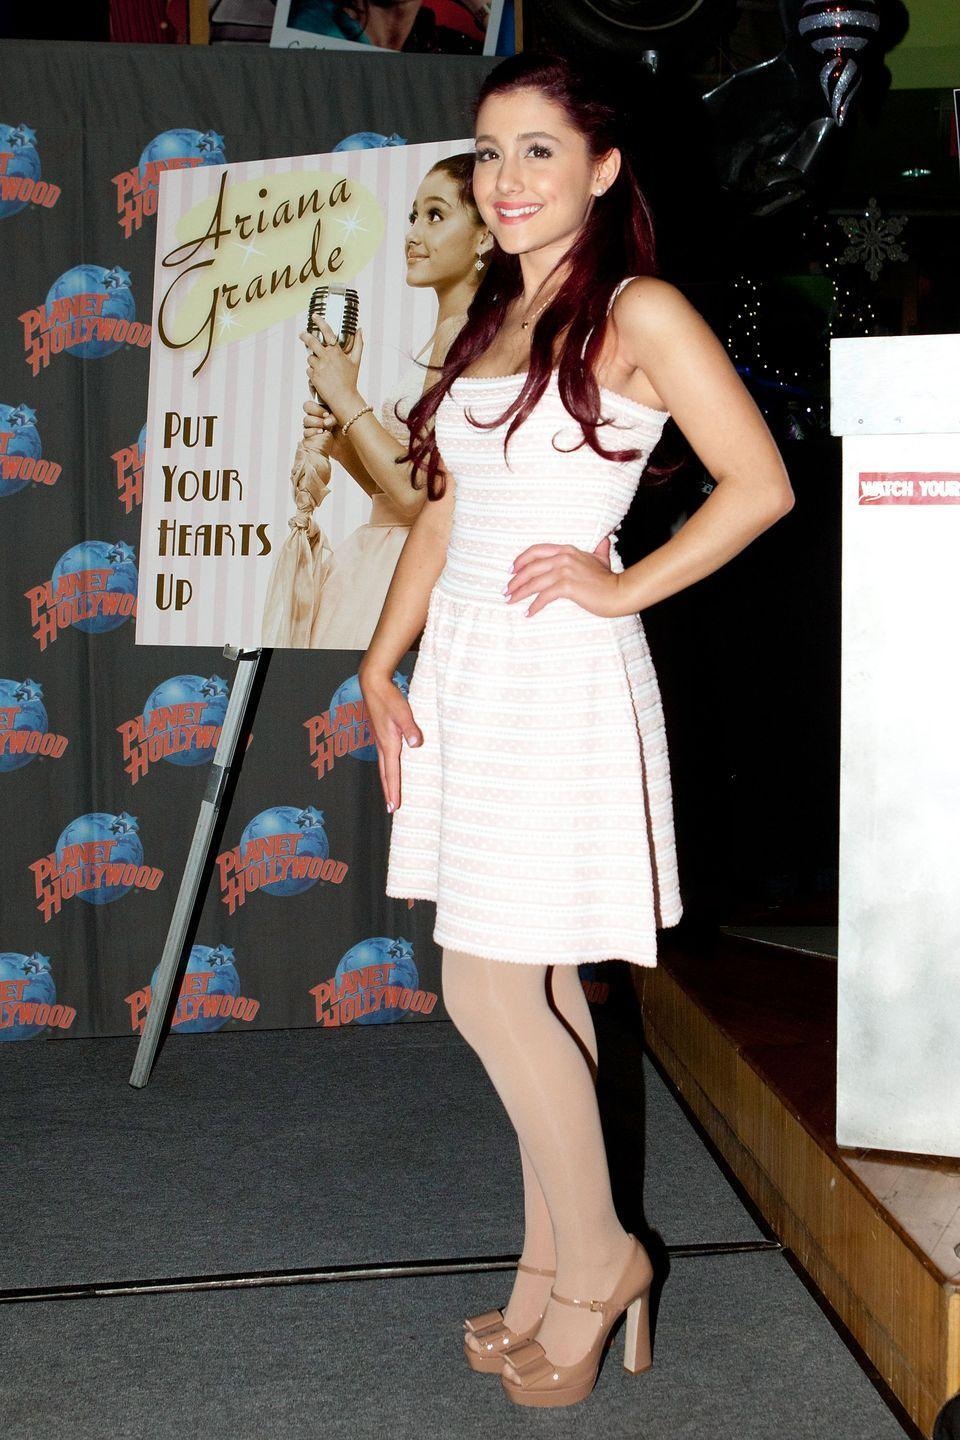 <p>Ariana Grande at Planet Hollywood in Time's Square.</p>